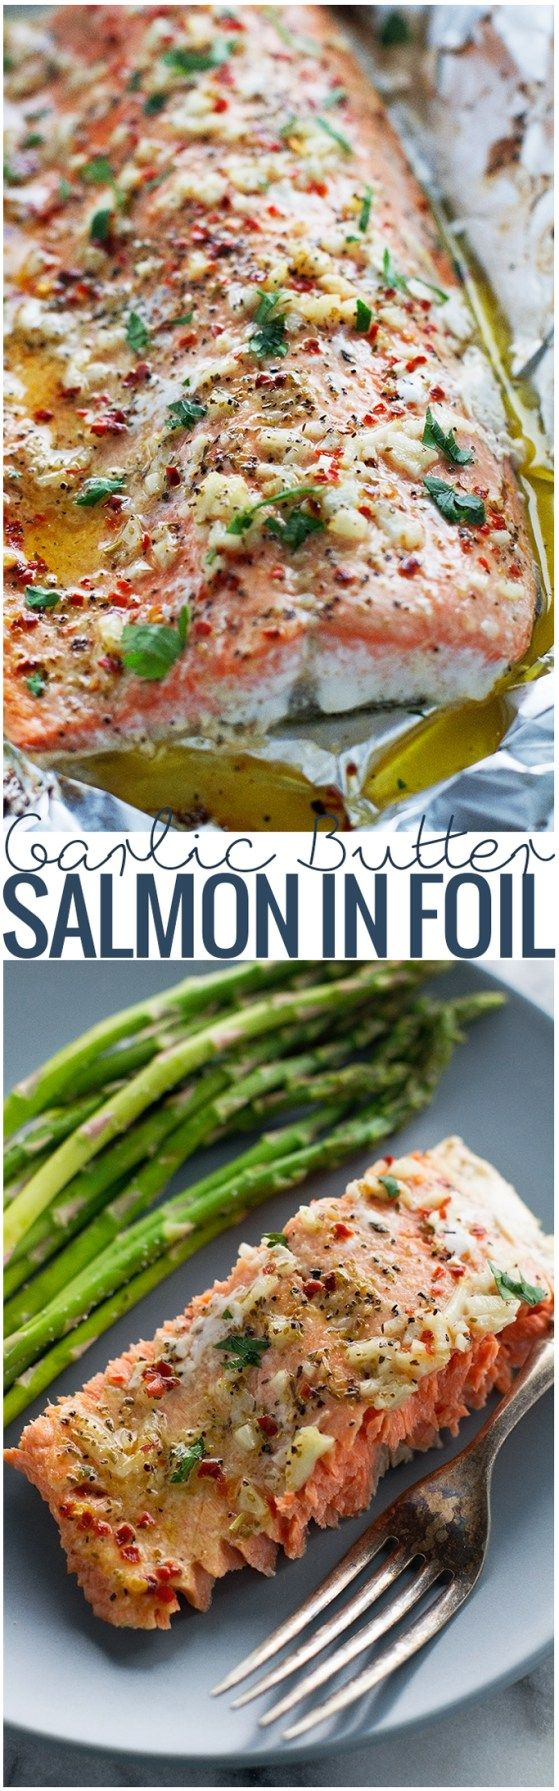 Lemon Garlic Butter Baked Salmon in Foil - This recipe takes less than 30 minutes and is perfect for weeknight dinners! | Littlespicejar.com